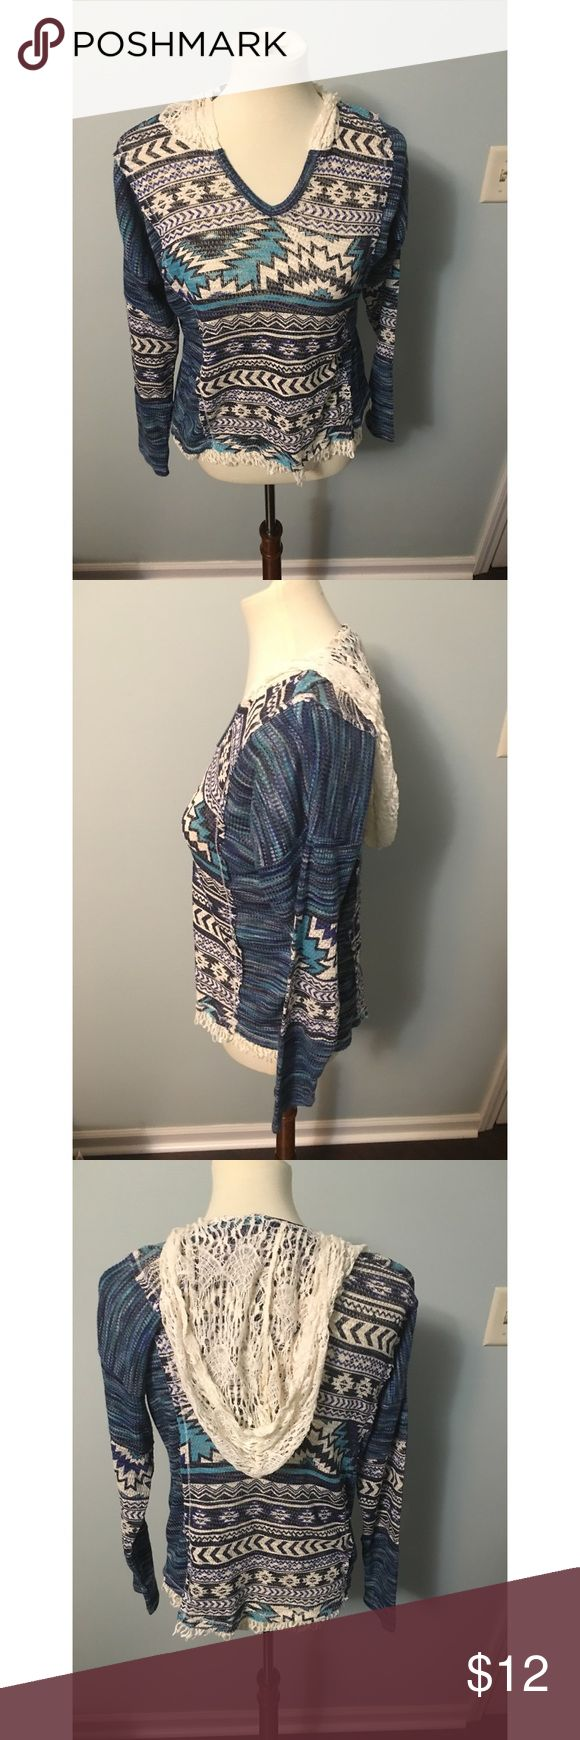 Women's Blue Aztec Print Top Hooded. Perfect for jeans on a casual day. Never worn. Good stretch. Tops